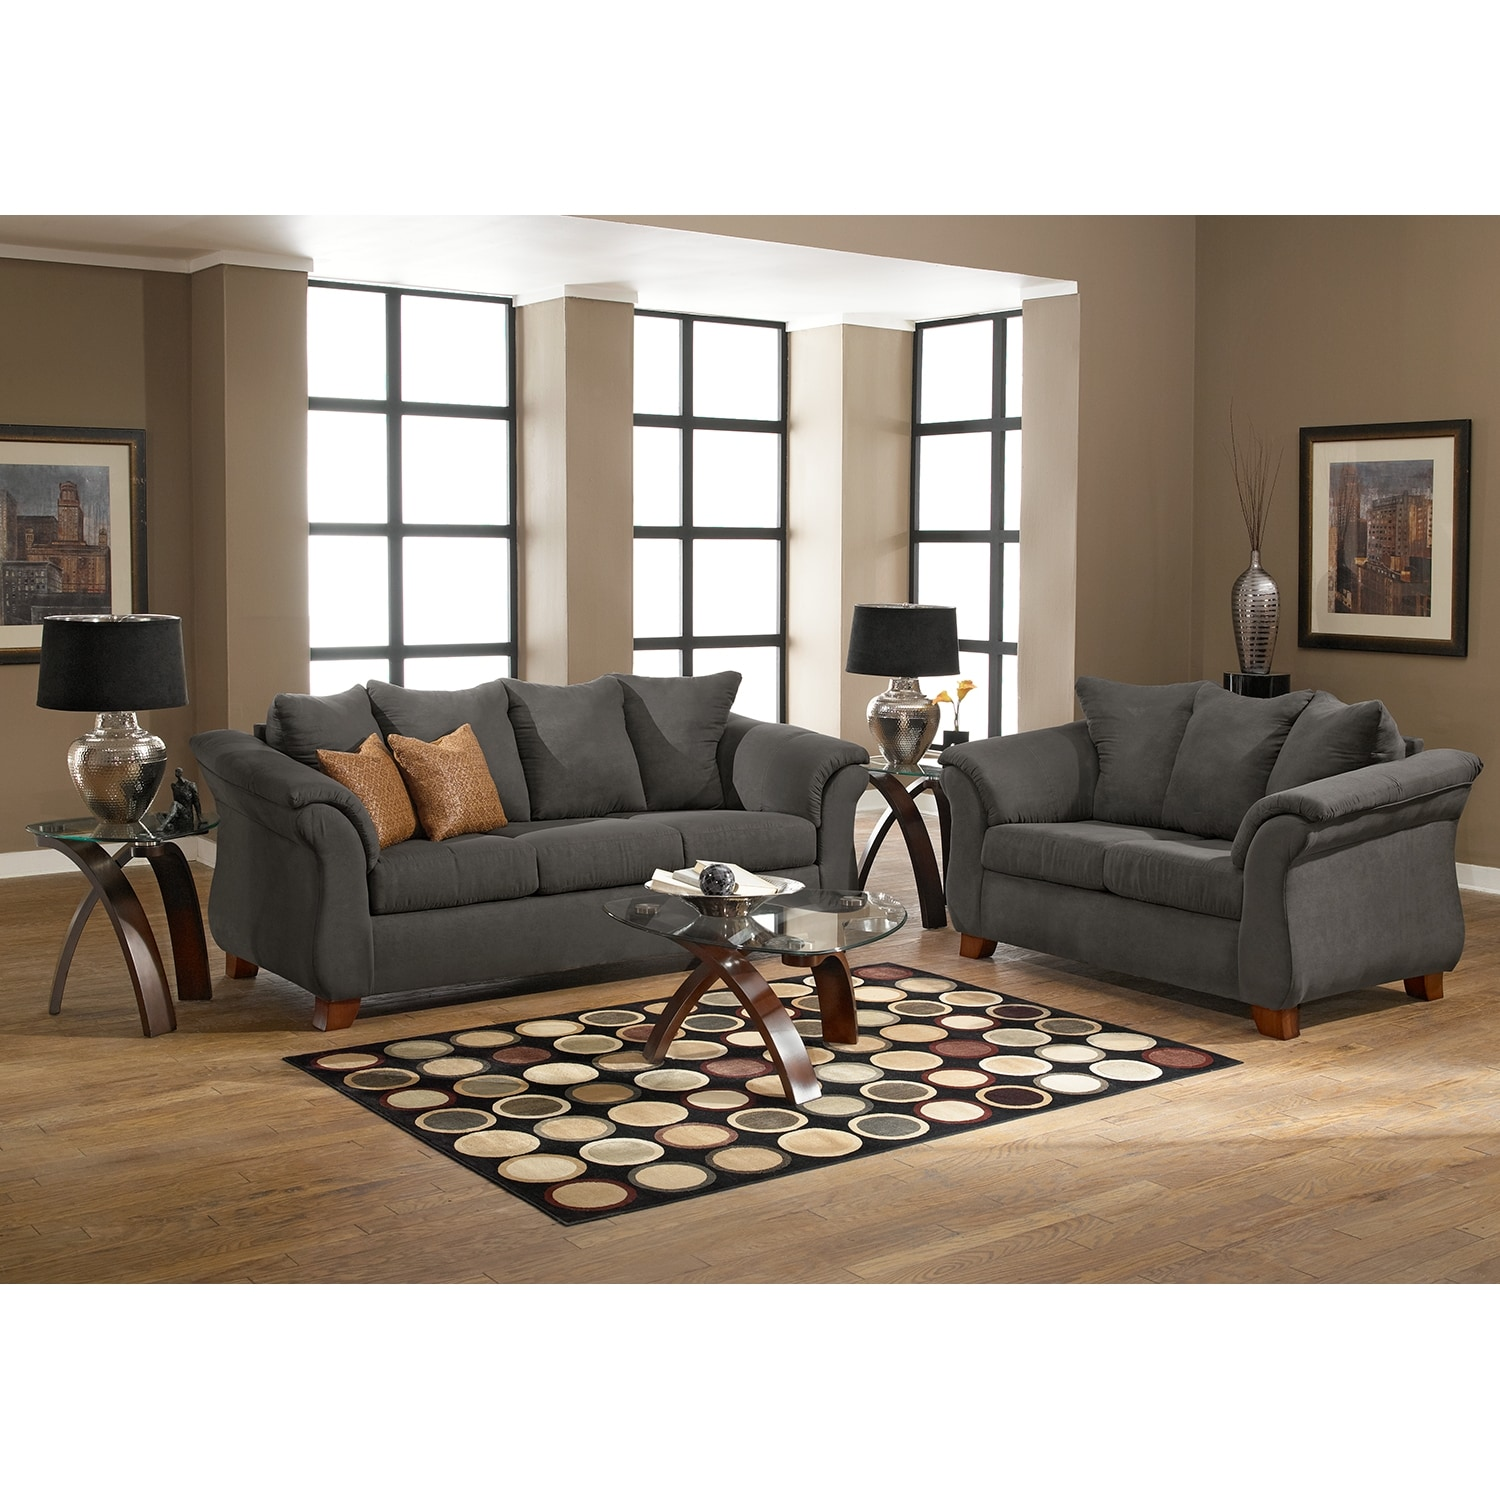 Adrian Sofa and Loveseat Set Graphite